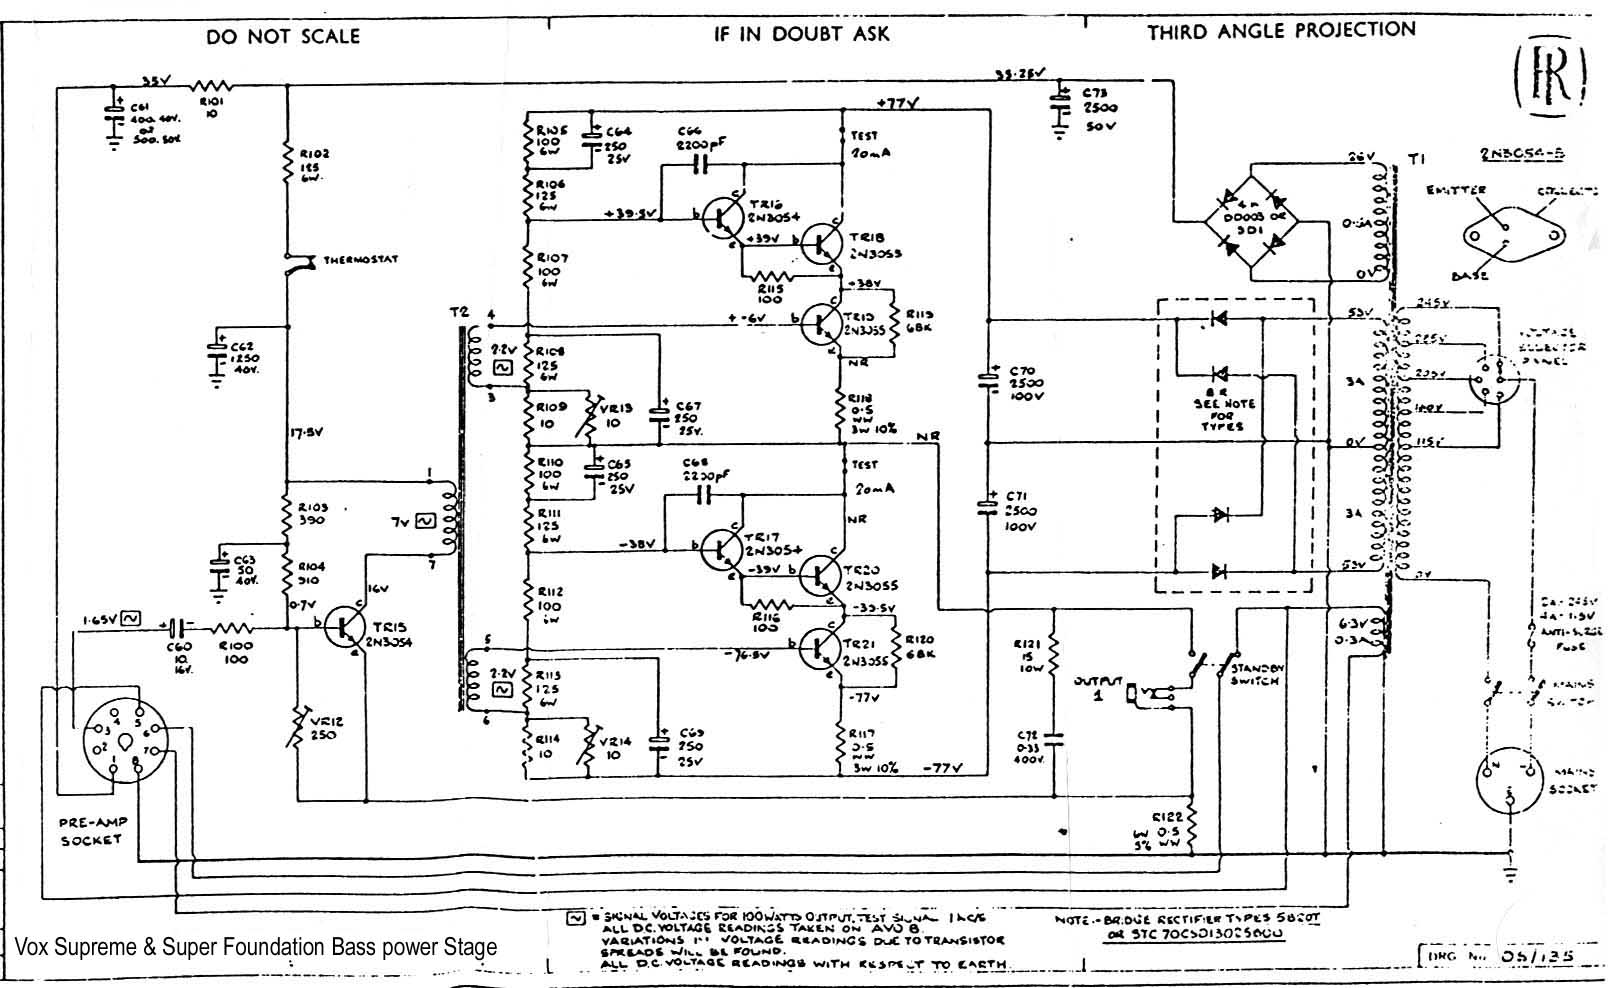 jmi_supreme_sfb_power Ups Wiring Diagram In Home on microwave ovens diagrams, home wiring basics, home wiring for dummies, home wiring plans, home wiring circuits, home appliances diagrams, home wiring details, home wiring panel, home wiring codes, insurance diagrams, home electrical diagrams, home safety diagrams, home theater hookup diagrams, home wiring layout, home wiring designs, home plumbing diagrams, home wiring prints, home wiring symbols, home wiring systems, home ventilation diagrams,